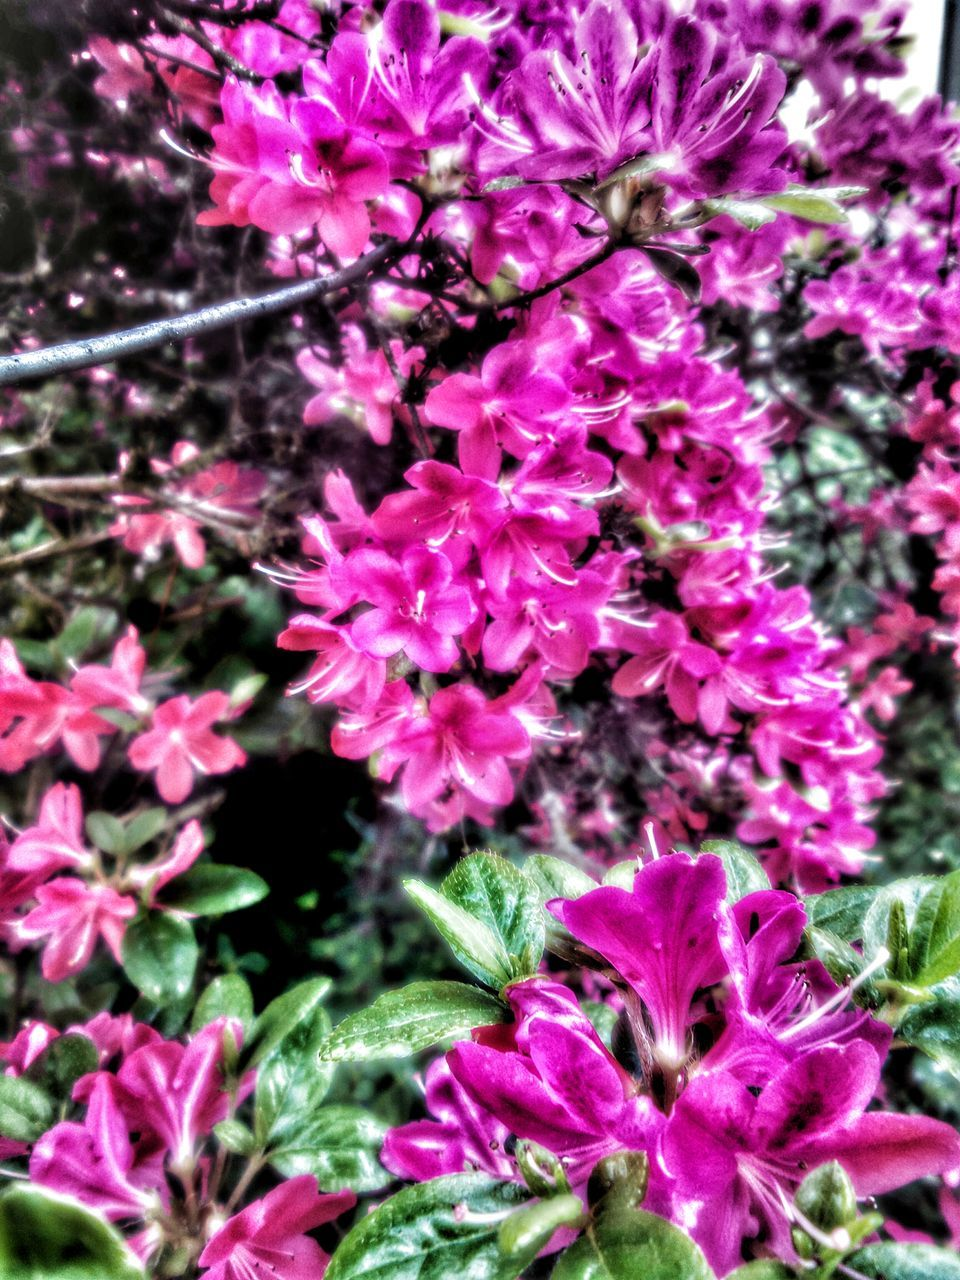 growth, flower, nature, plant, purple, fragility, no people, beauty in nature, lilac, blooming, outdoors, freshness, close-up, day